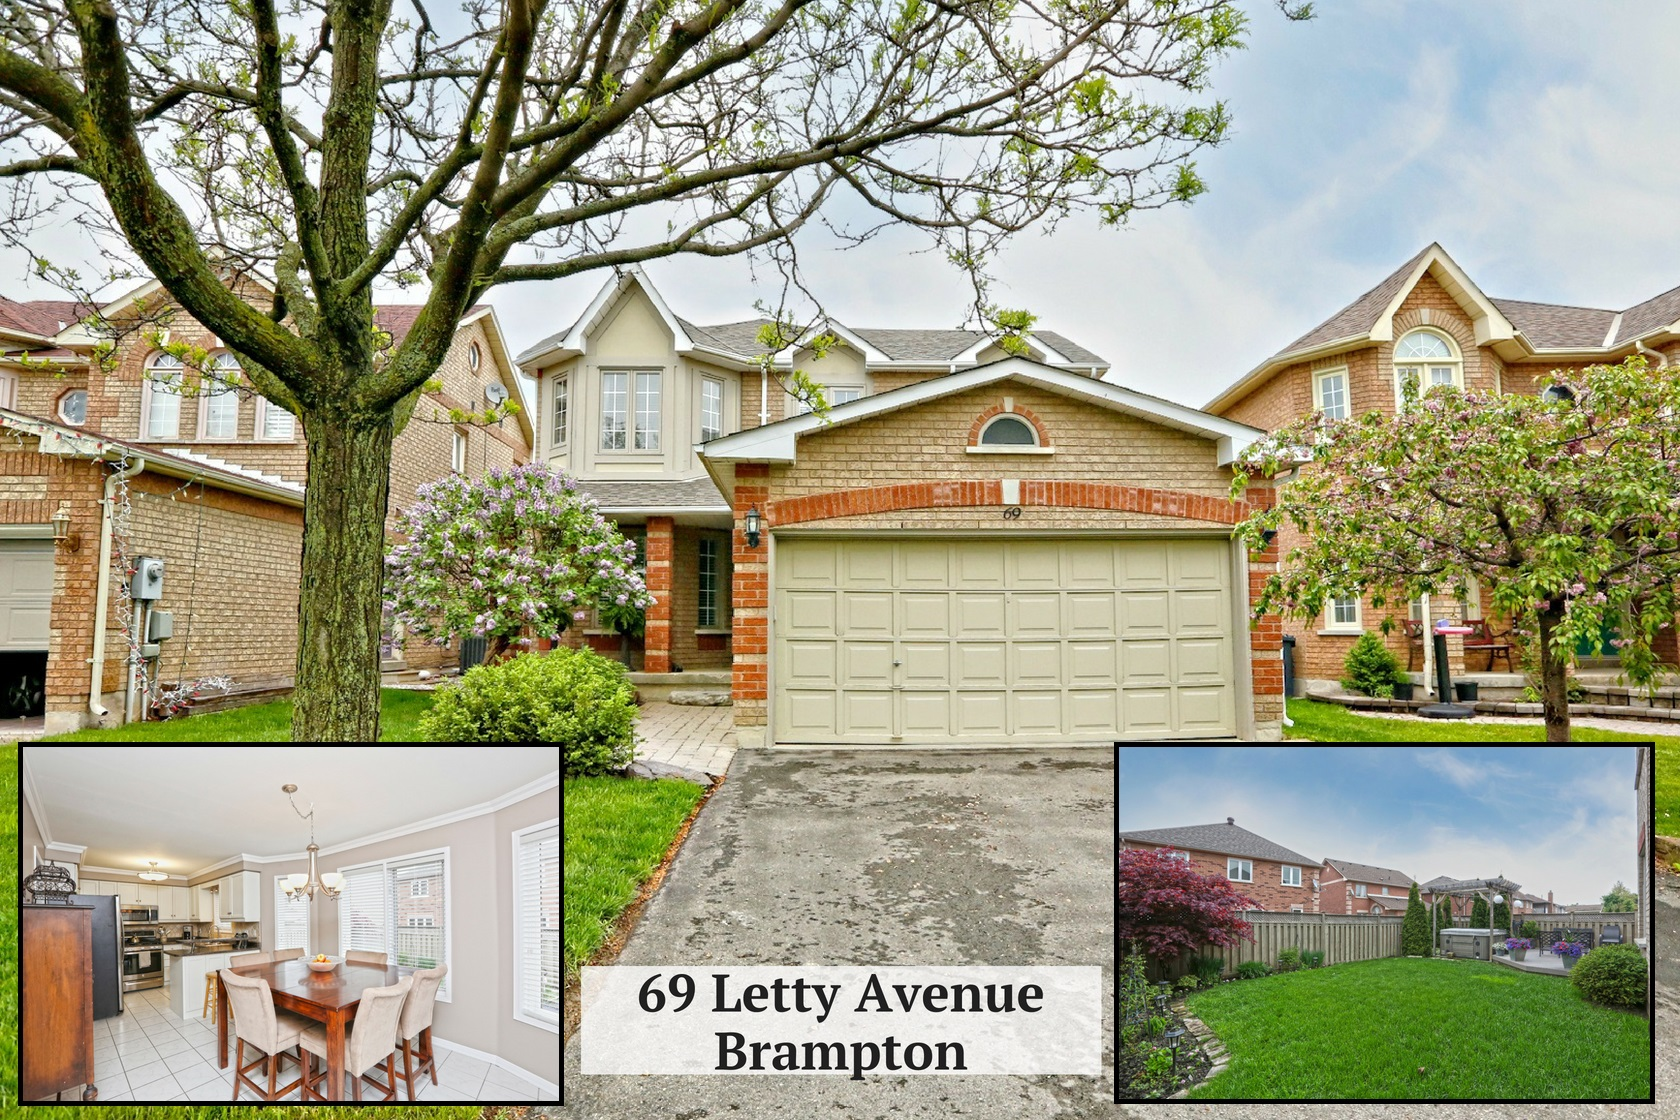 $755,000 • 69 Letty Ave